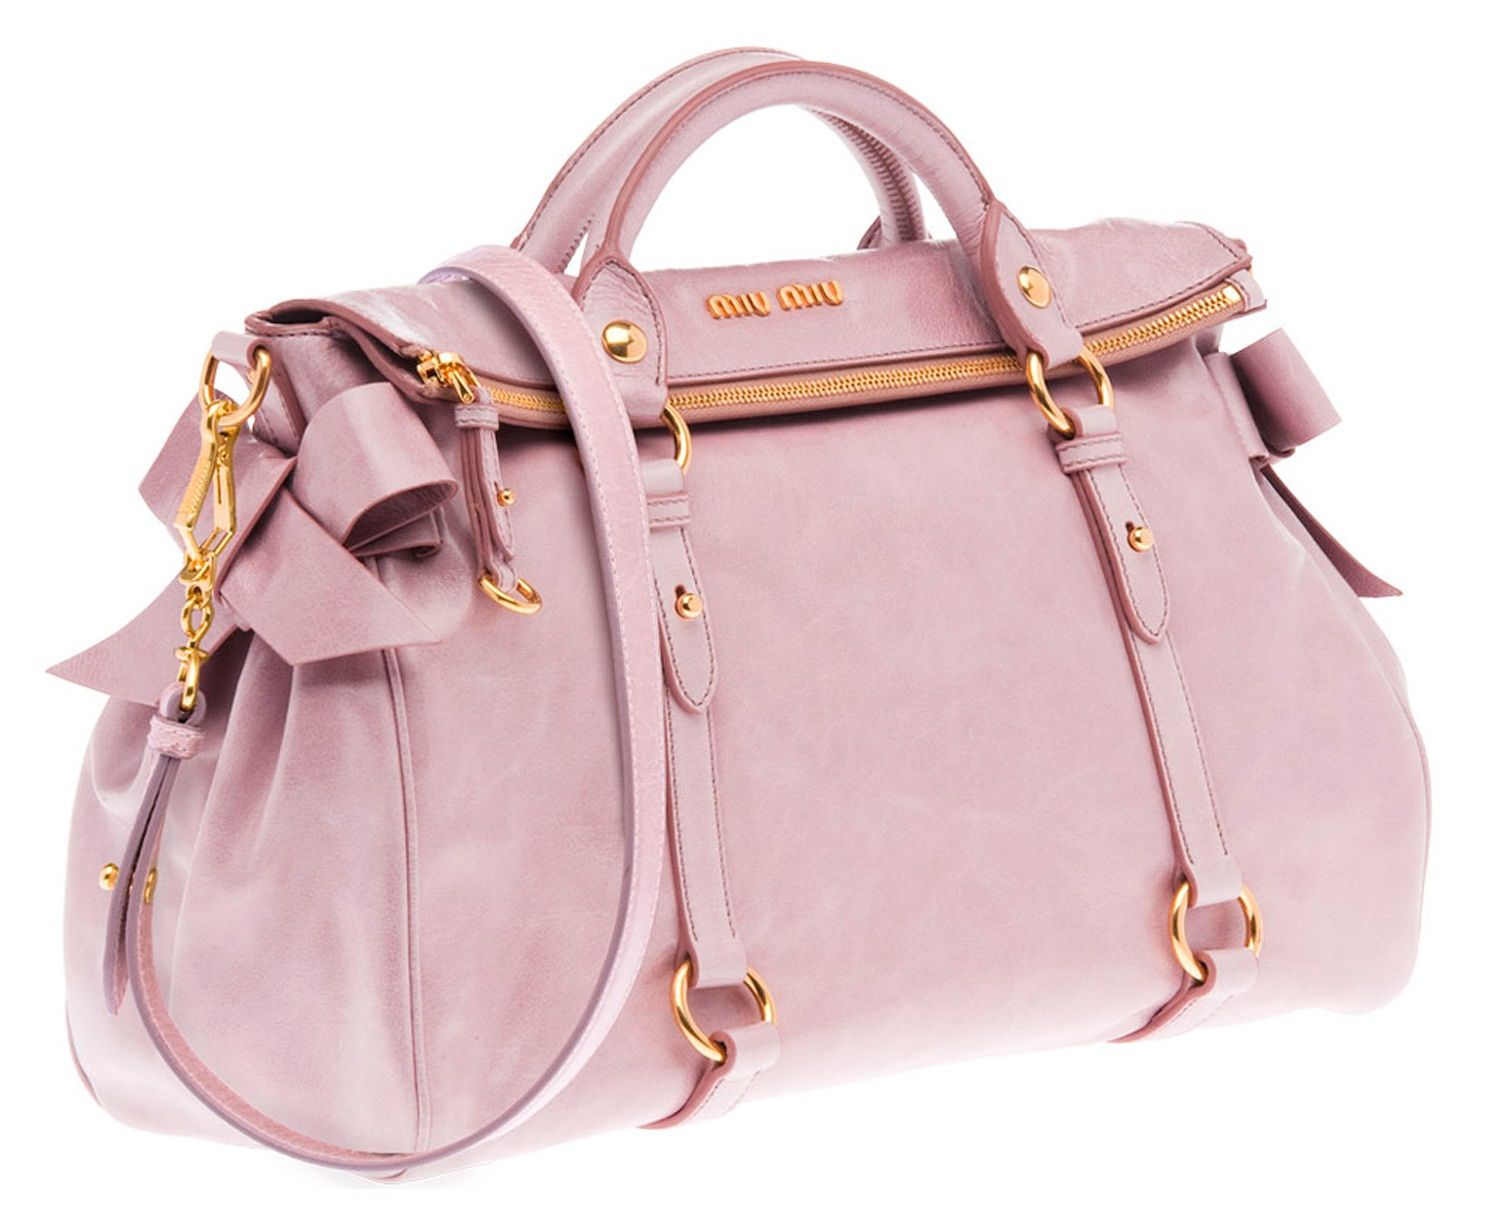 Miu Miu Shiny Calf Top Handle Bag